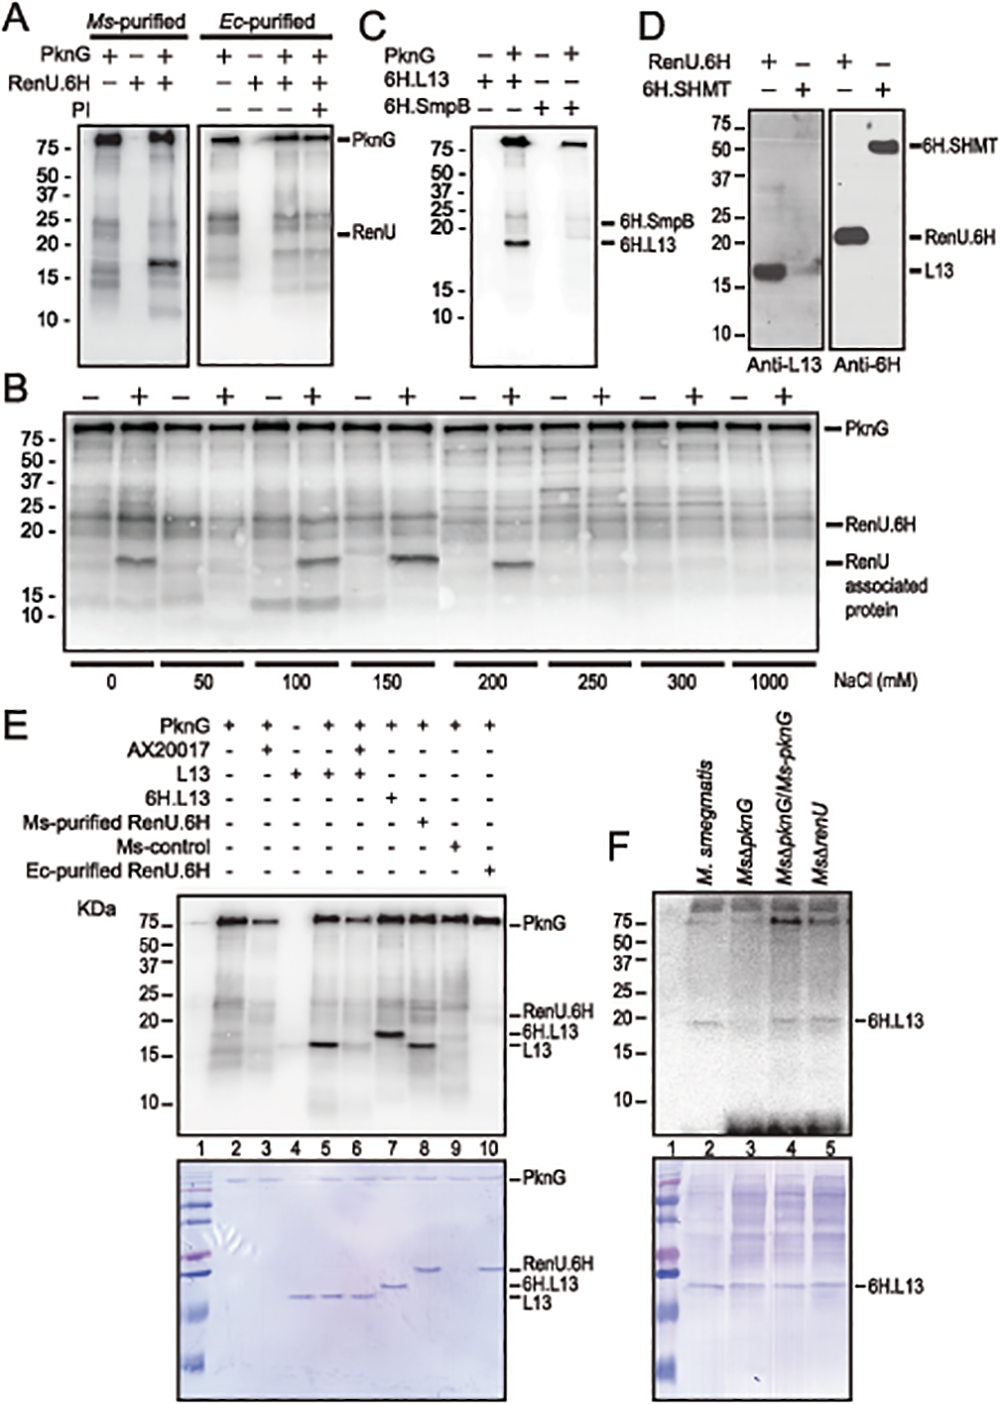 L13, a ribosomal protein associated with RenU, is phosphorylated by PknG.